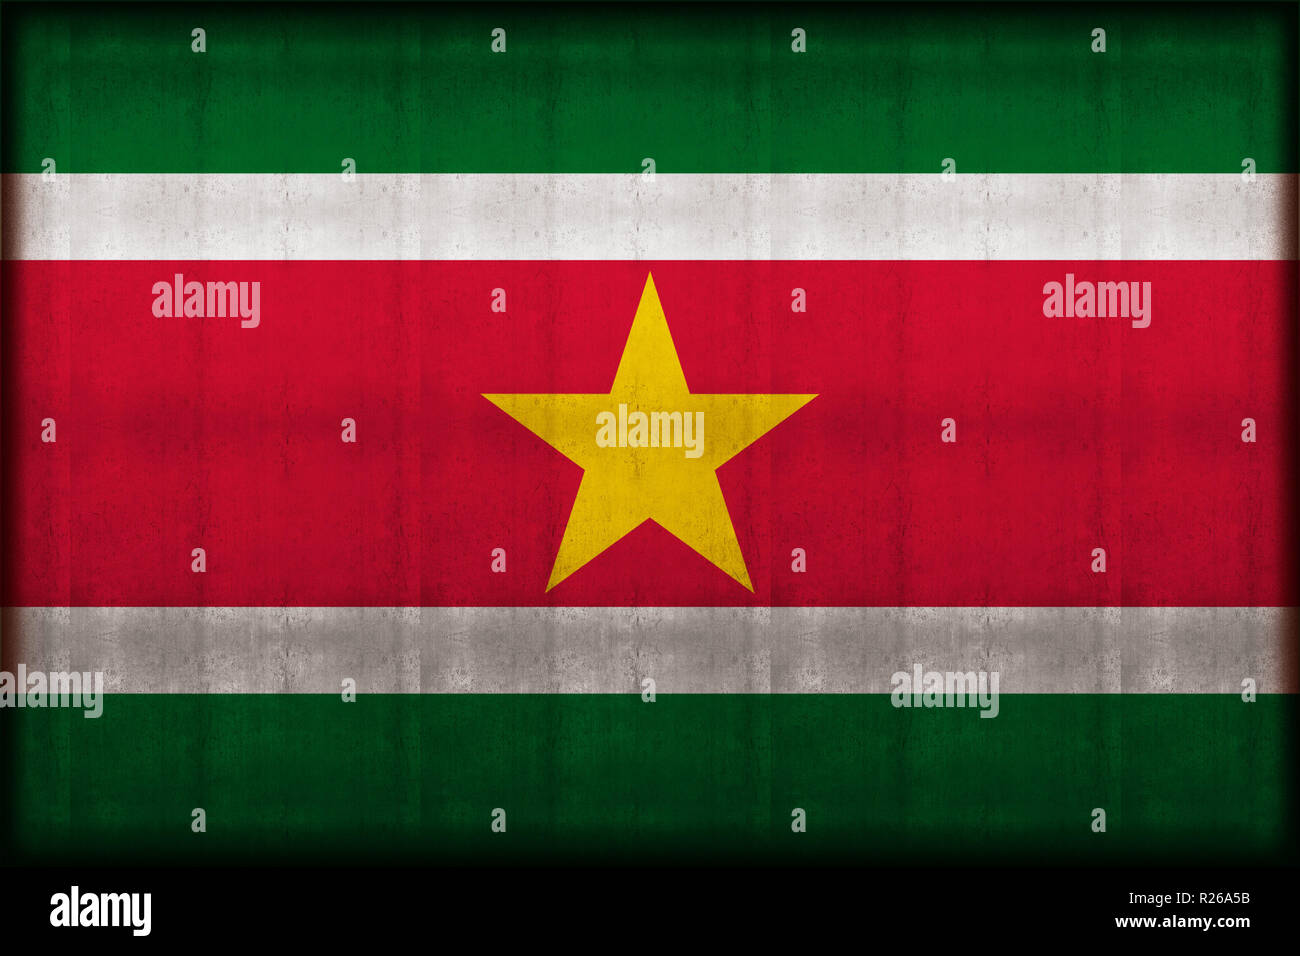 Suriname rusty flag illustration. Usable for background and texture. - Stock Image